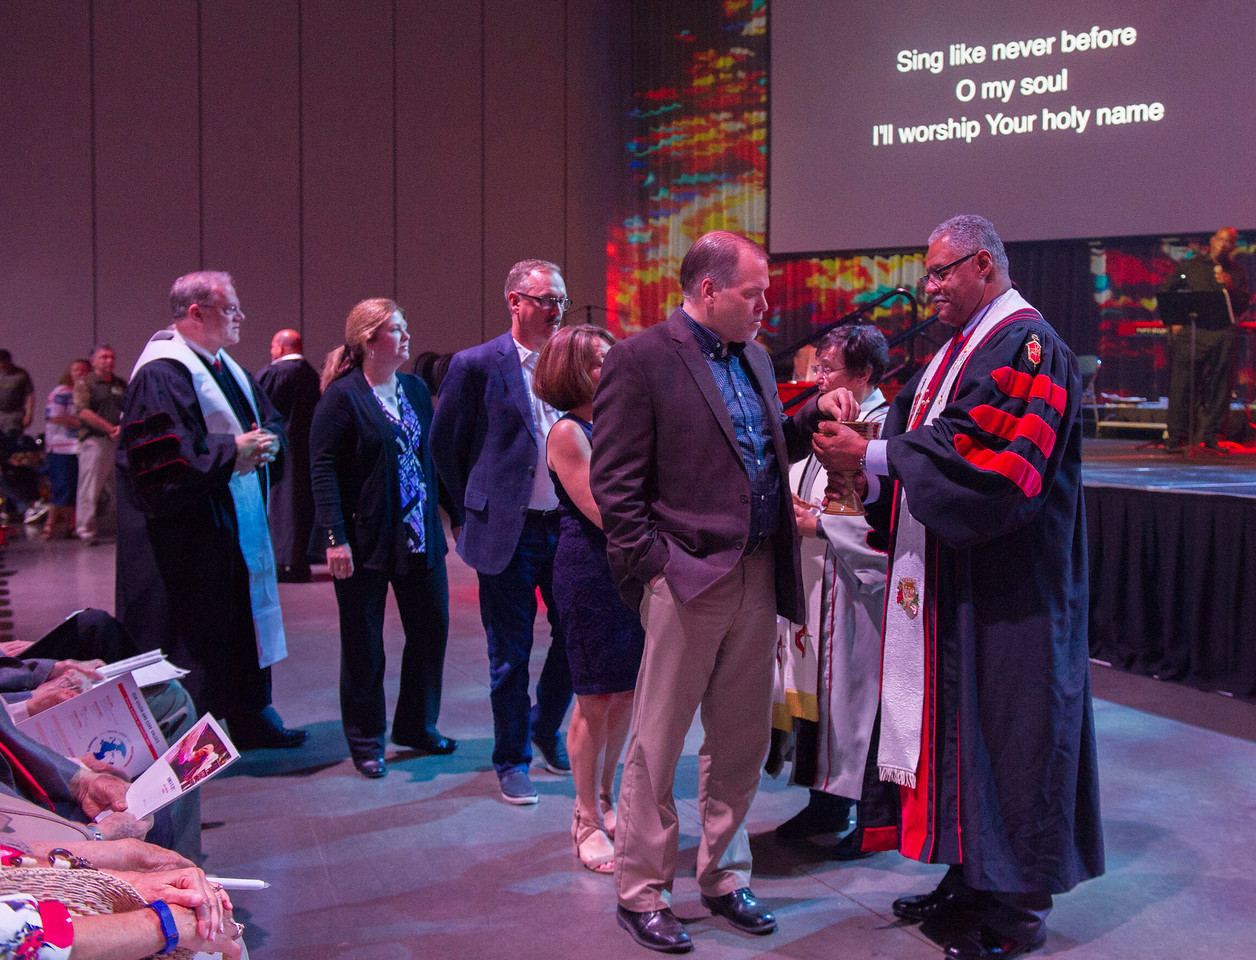 Bishop Julius C. Trimble at the Service of Remembrance and Communion at 2017 INUMC Annual Conference in Indianapolis